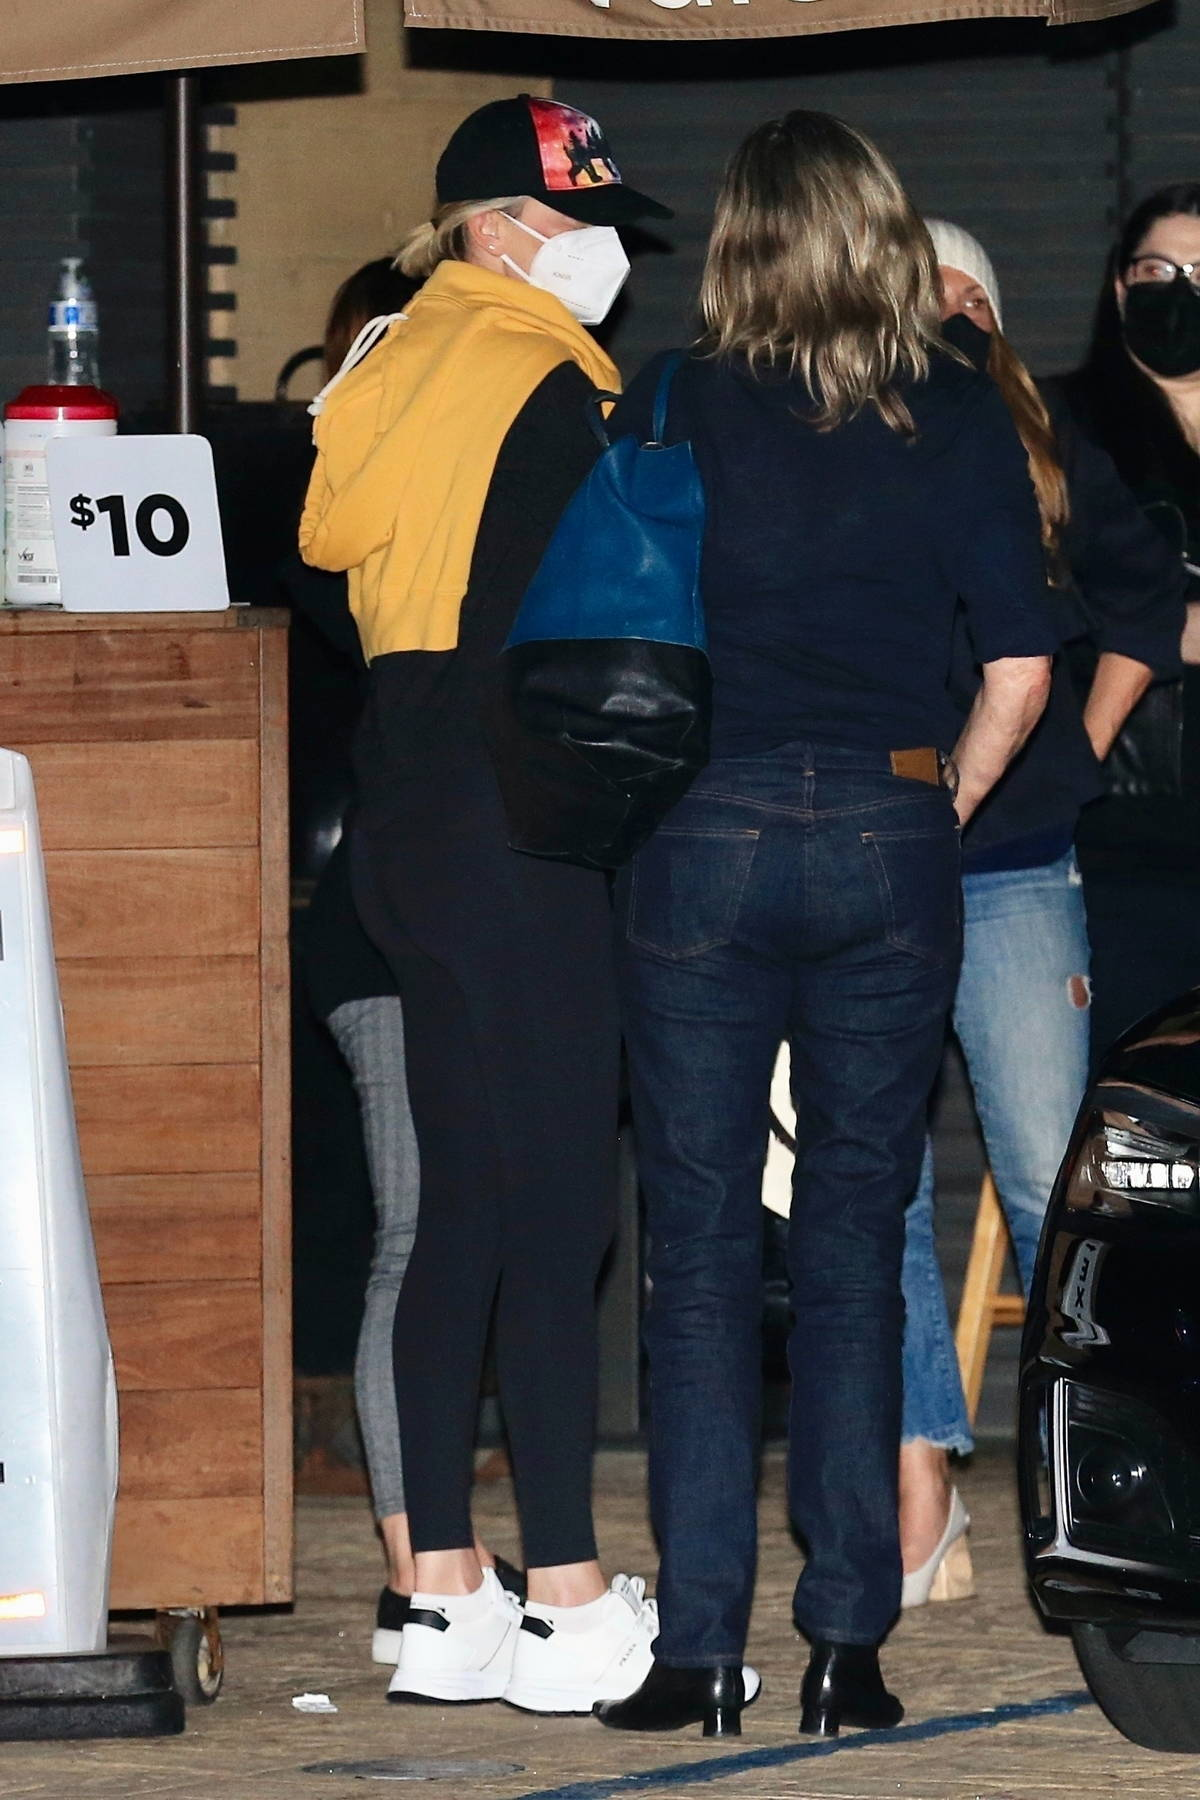 Charlize Theron keeps a low profile as she leaves after dinner with friends at Nobu in Malibu, California